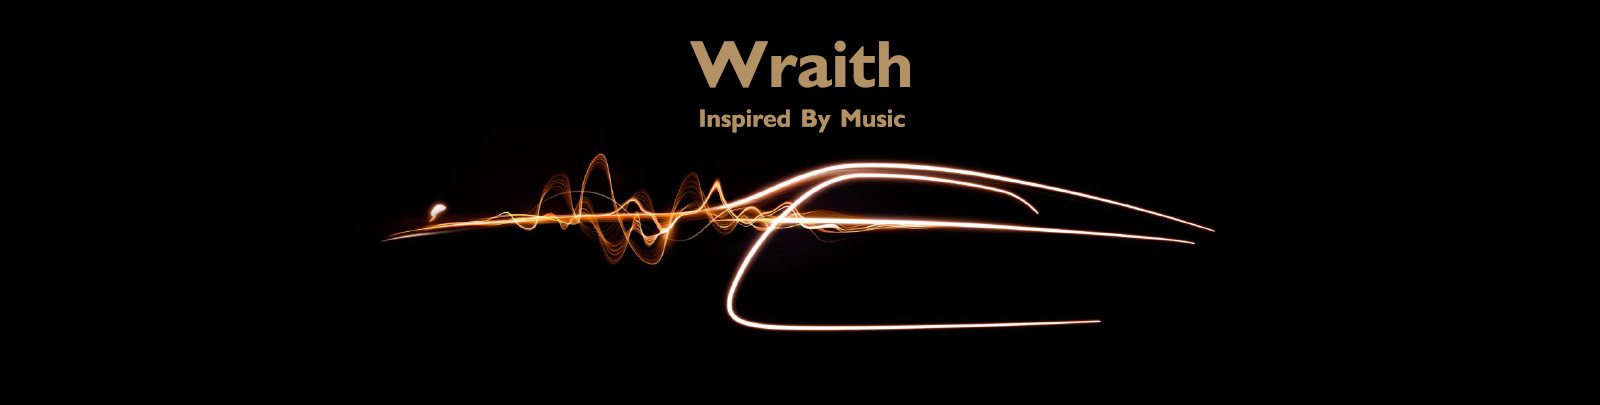 Rolls-Royce Special Edition 'Wraith Inspired by Music'